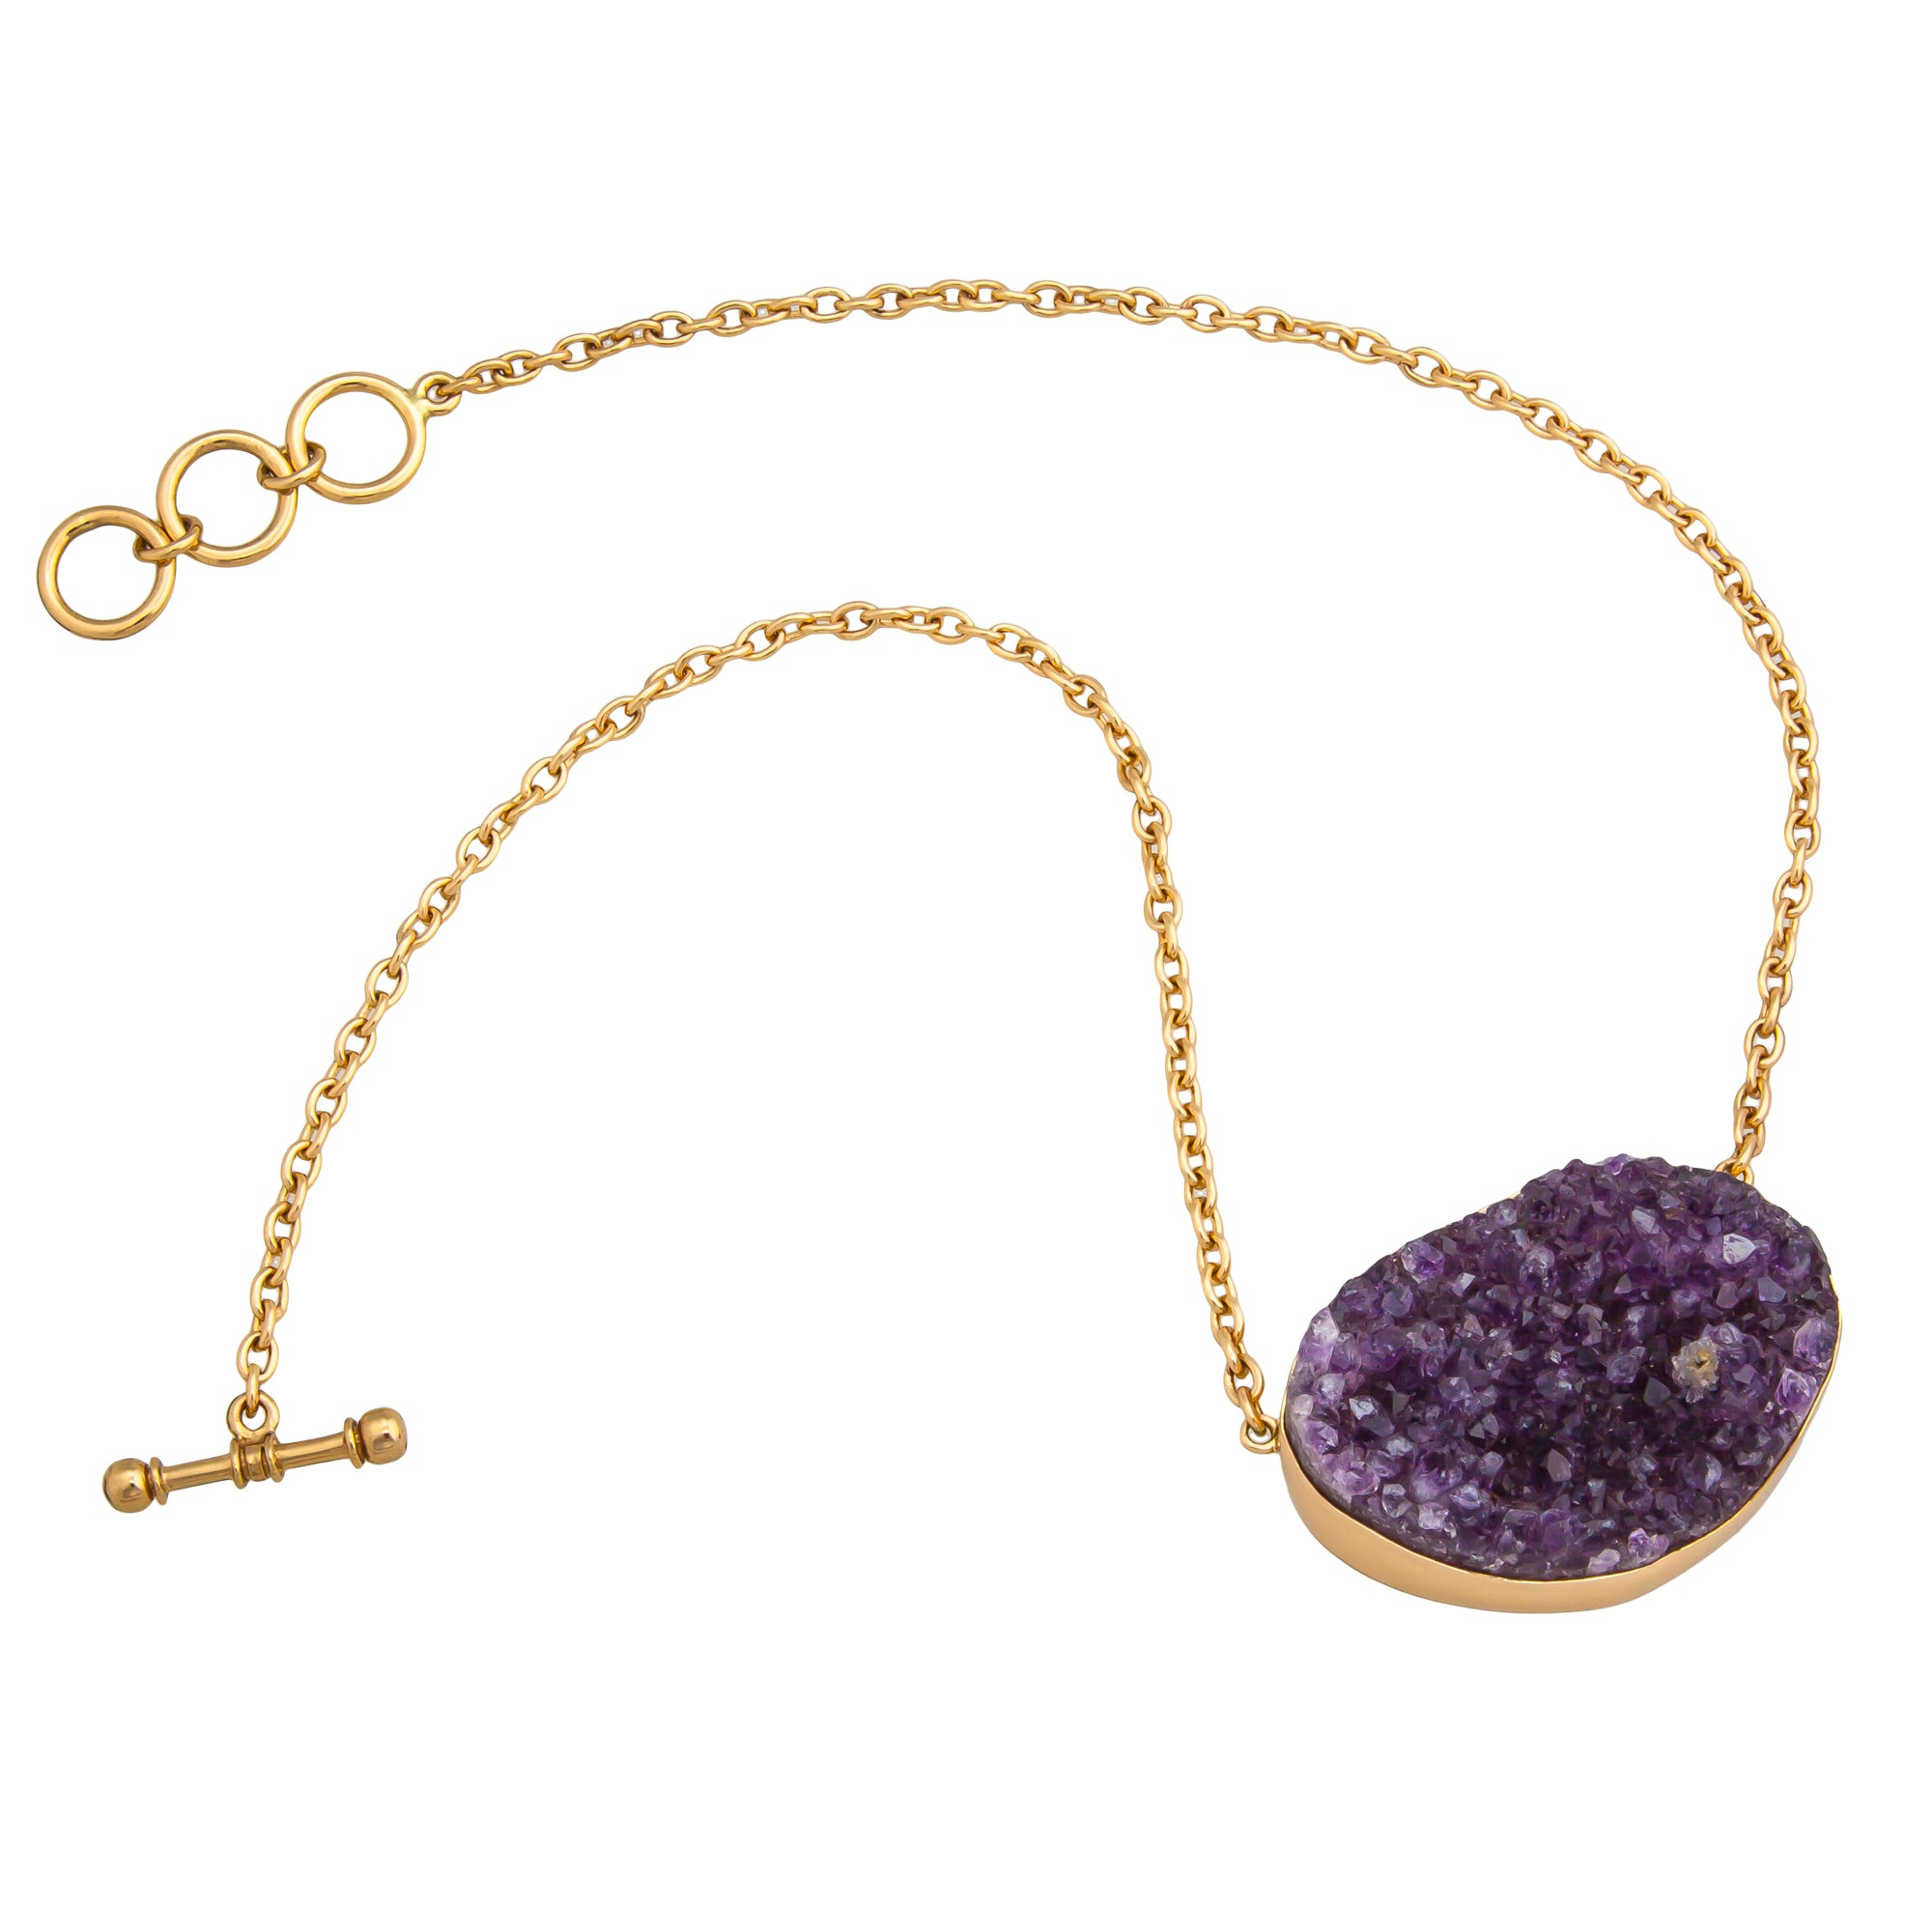 Alchemia Amethyst Geode Necklace